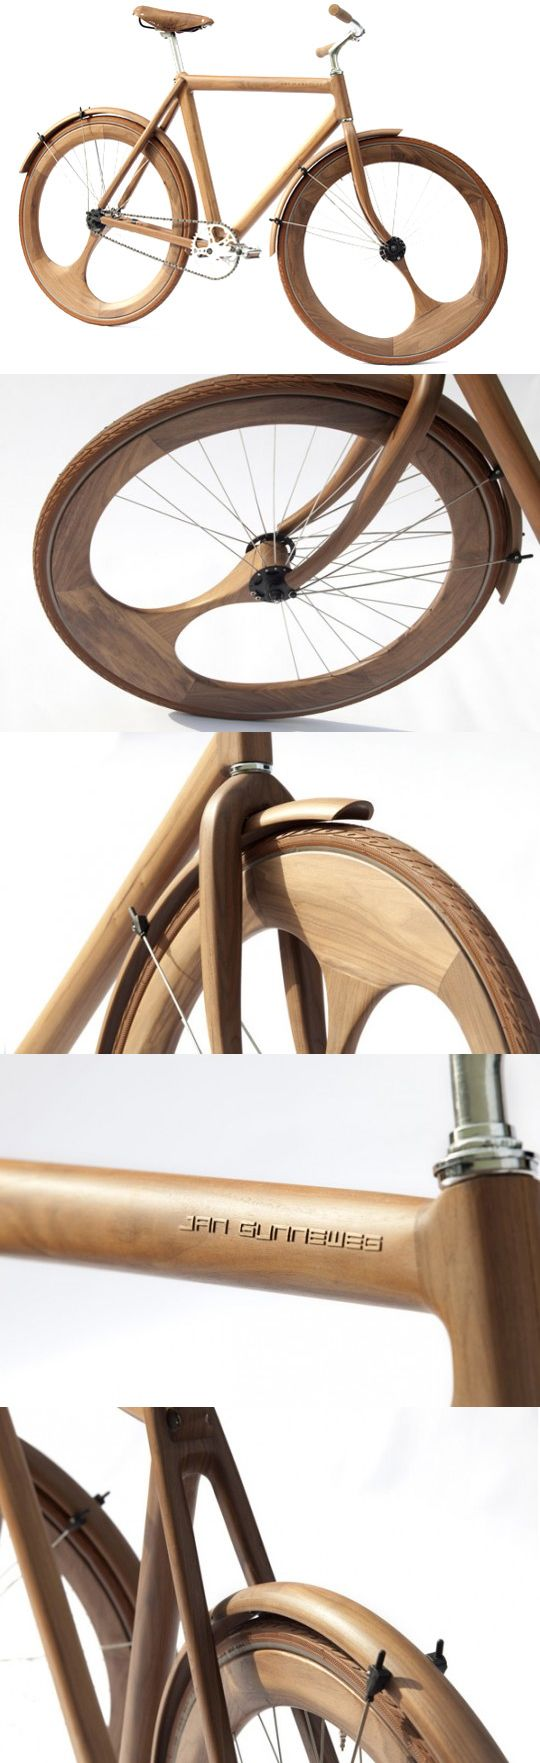 #wood #bike Jan Gunneweg Wooden Bike - Bom exemplo do uso da madeira para…